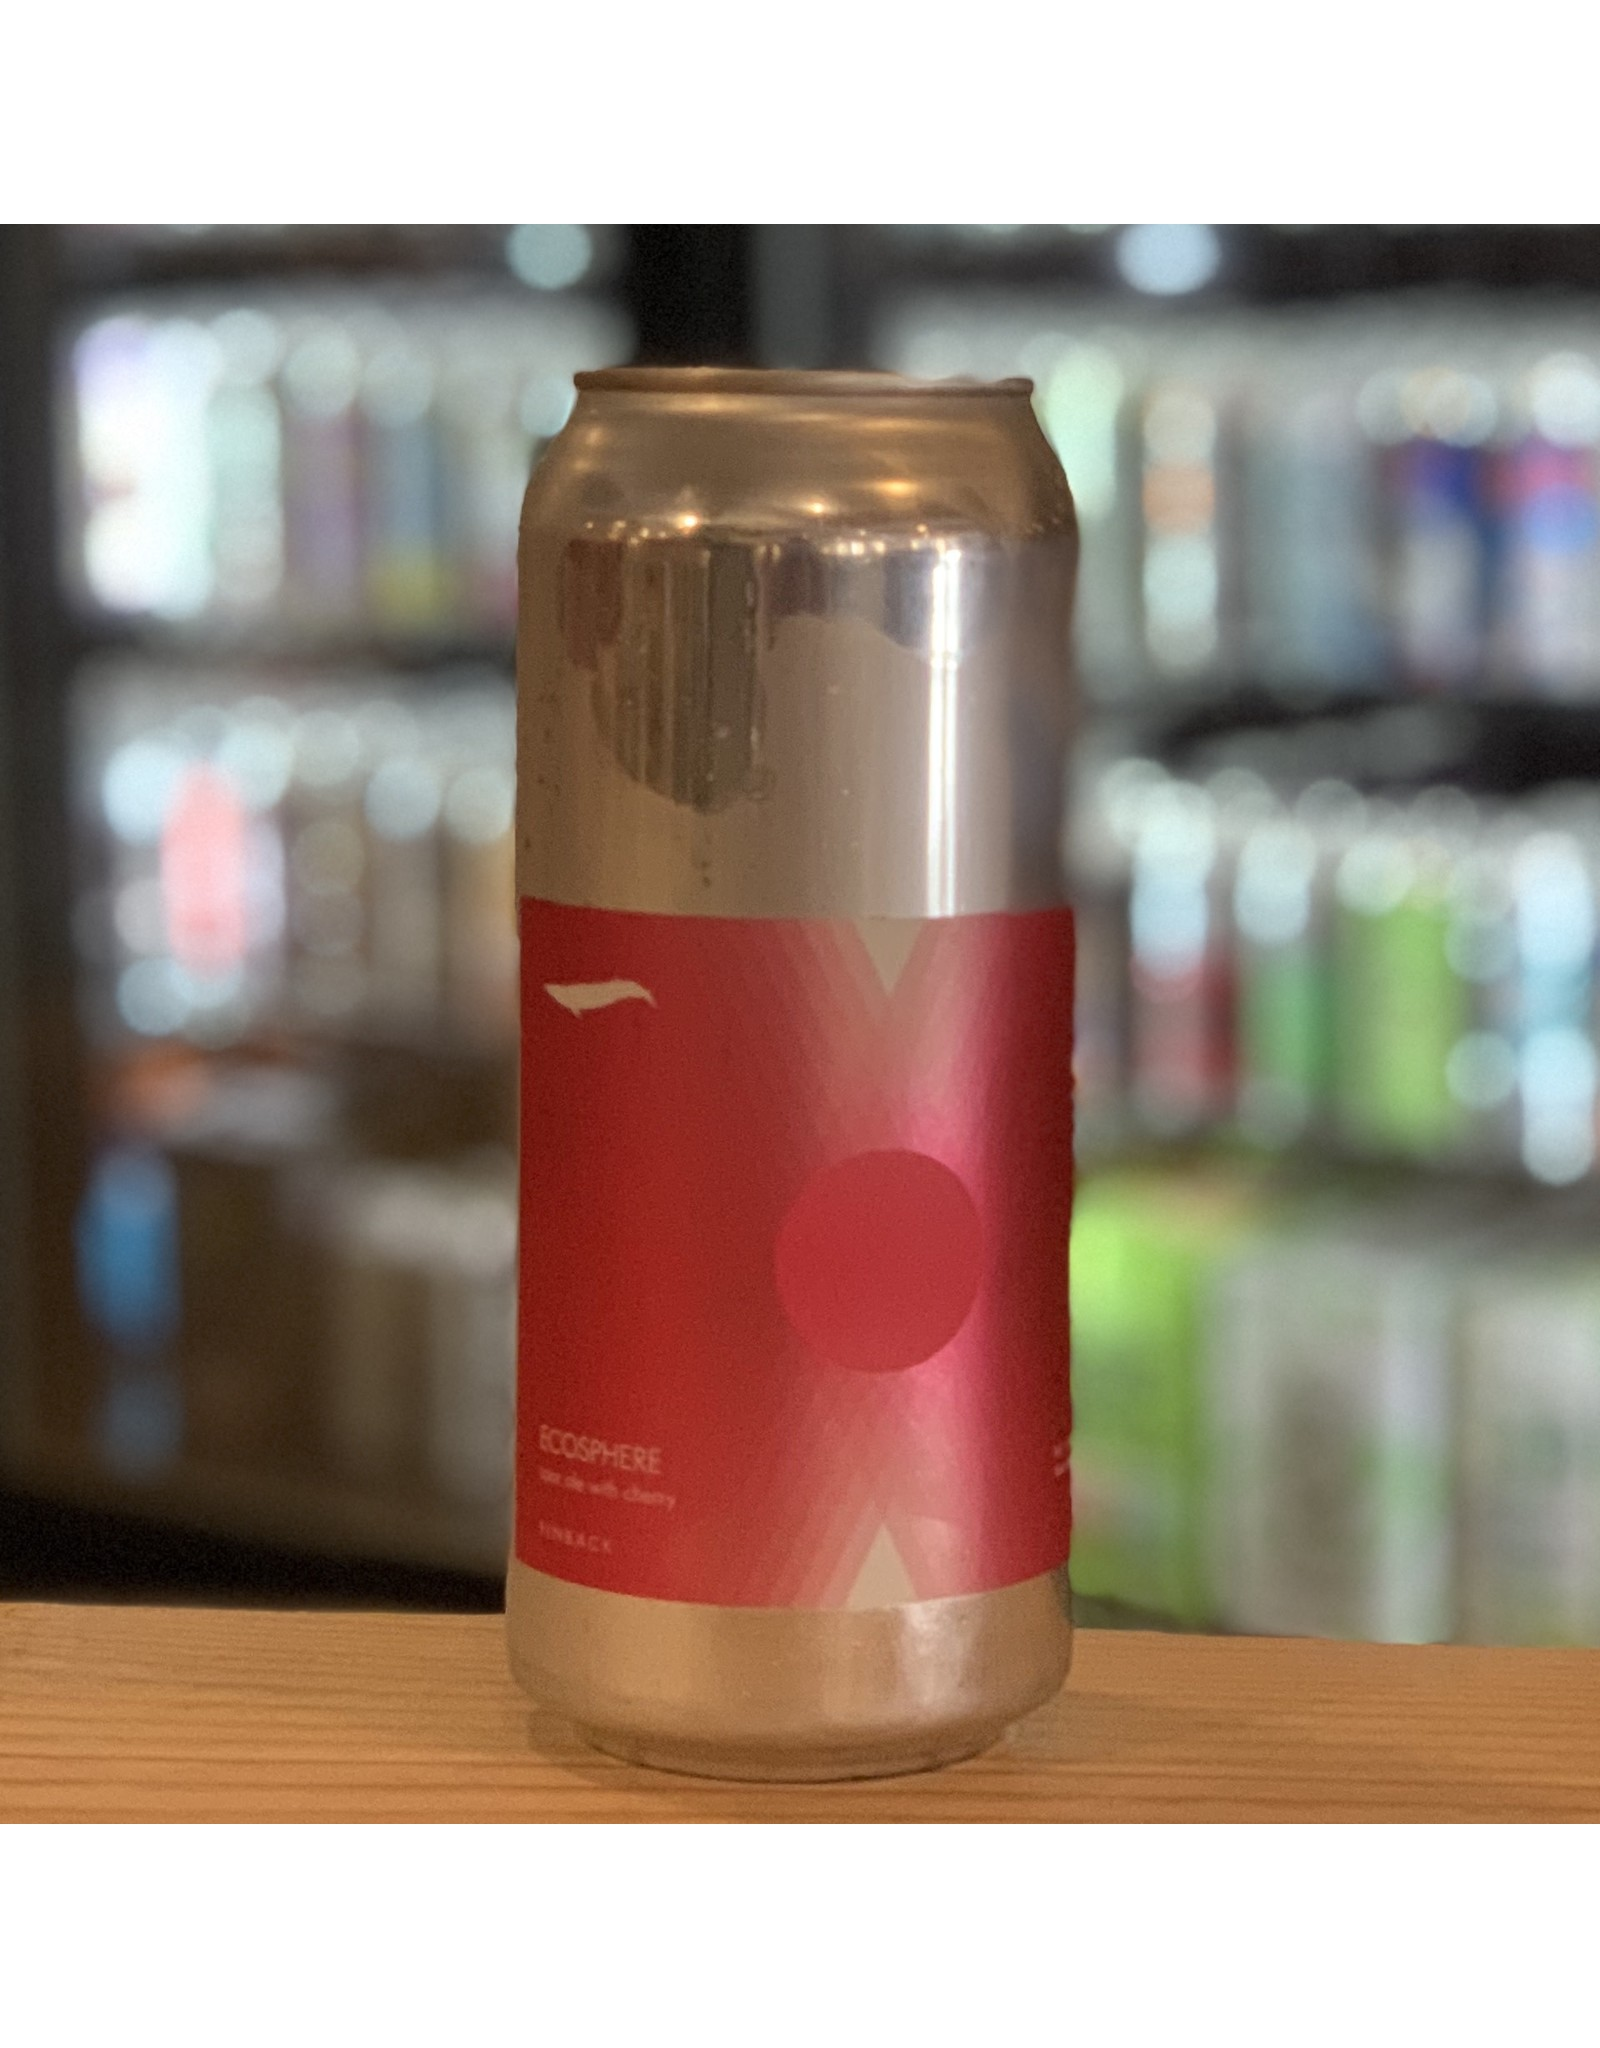 Sour FInback Brewery ''Ecosphere'' Sour Ale w/Tart Cherry - Queens, NY